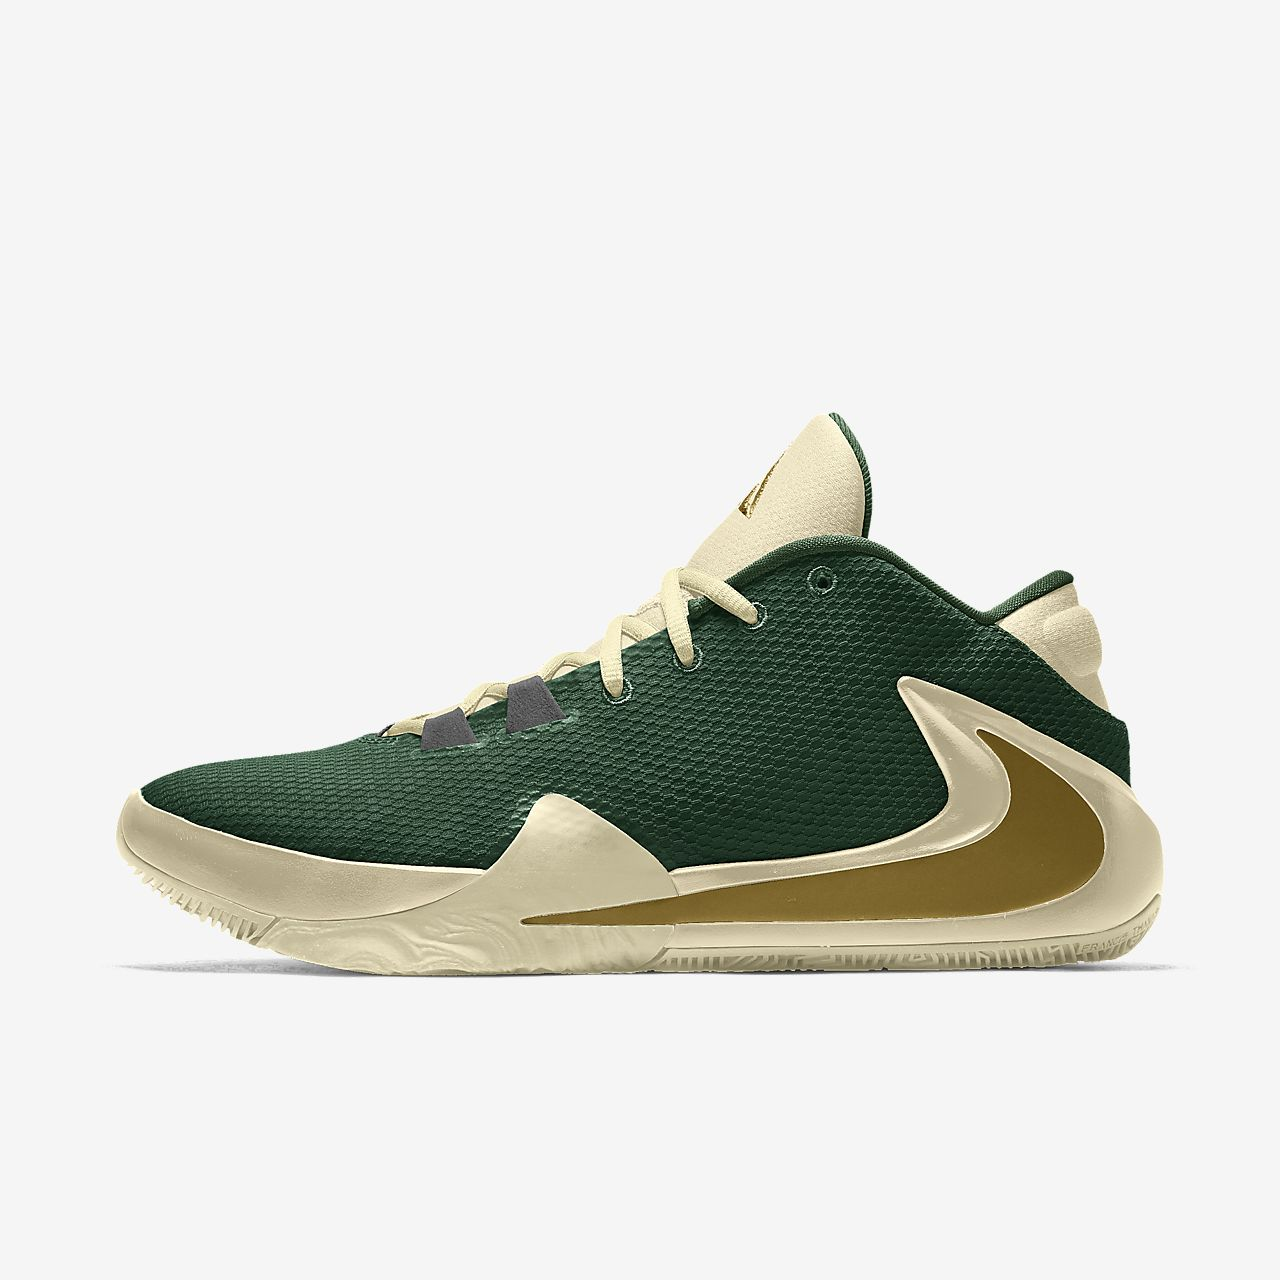 Chaussure de basketball personnalisable Nike Zoom Freak 1 By You